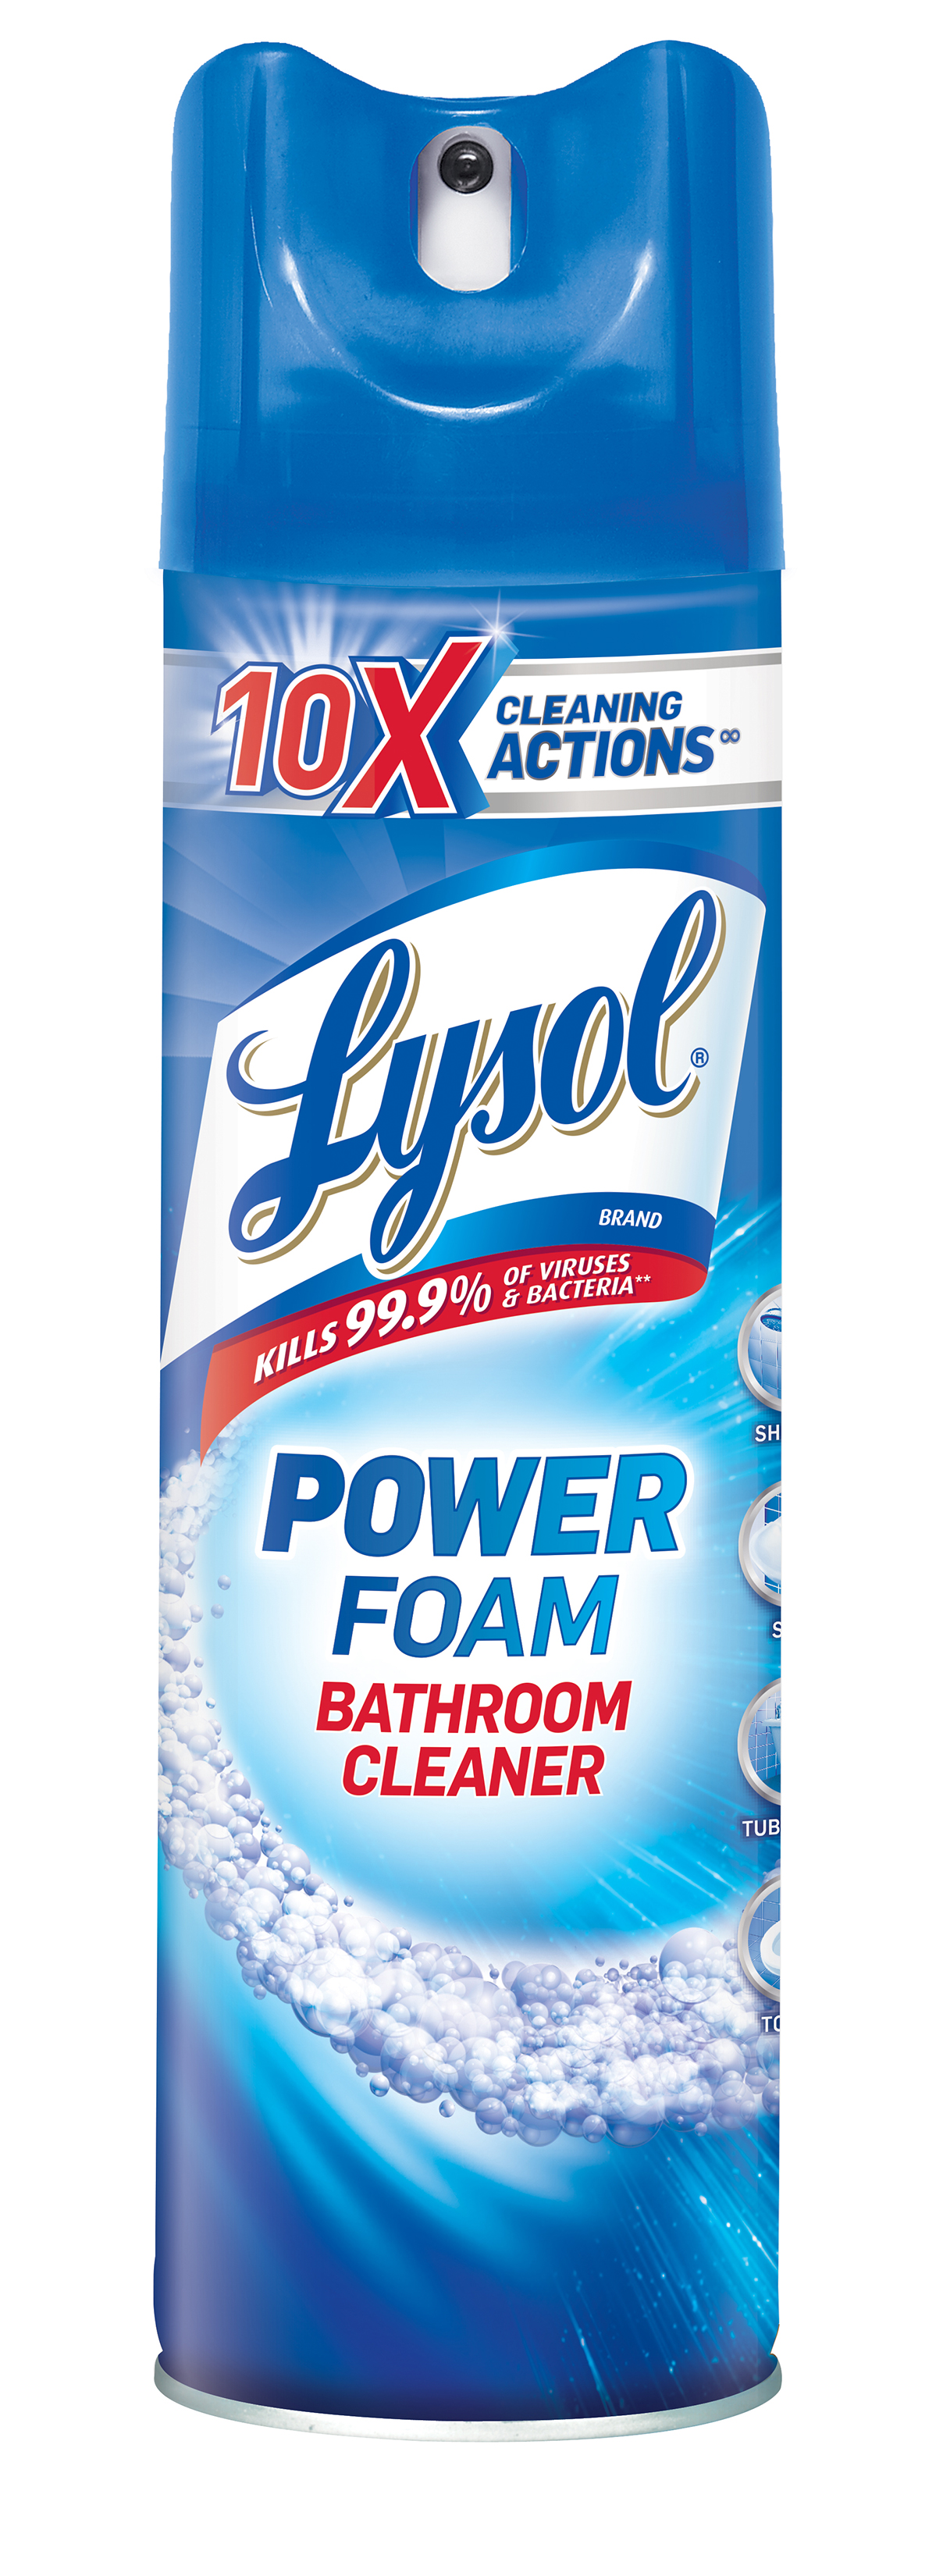 LYSOL® Power Foam Bathroom Cleaner